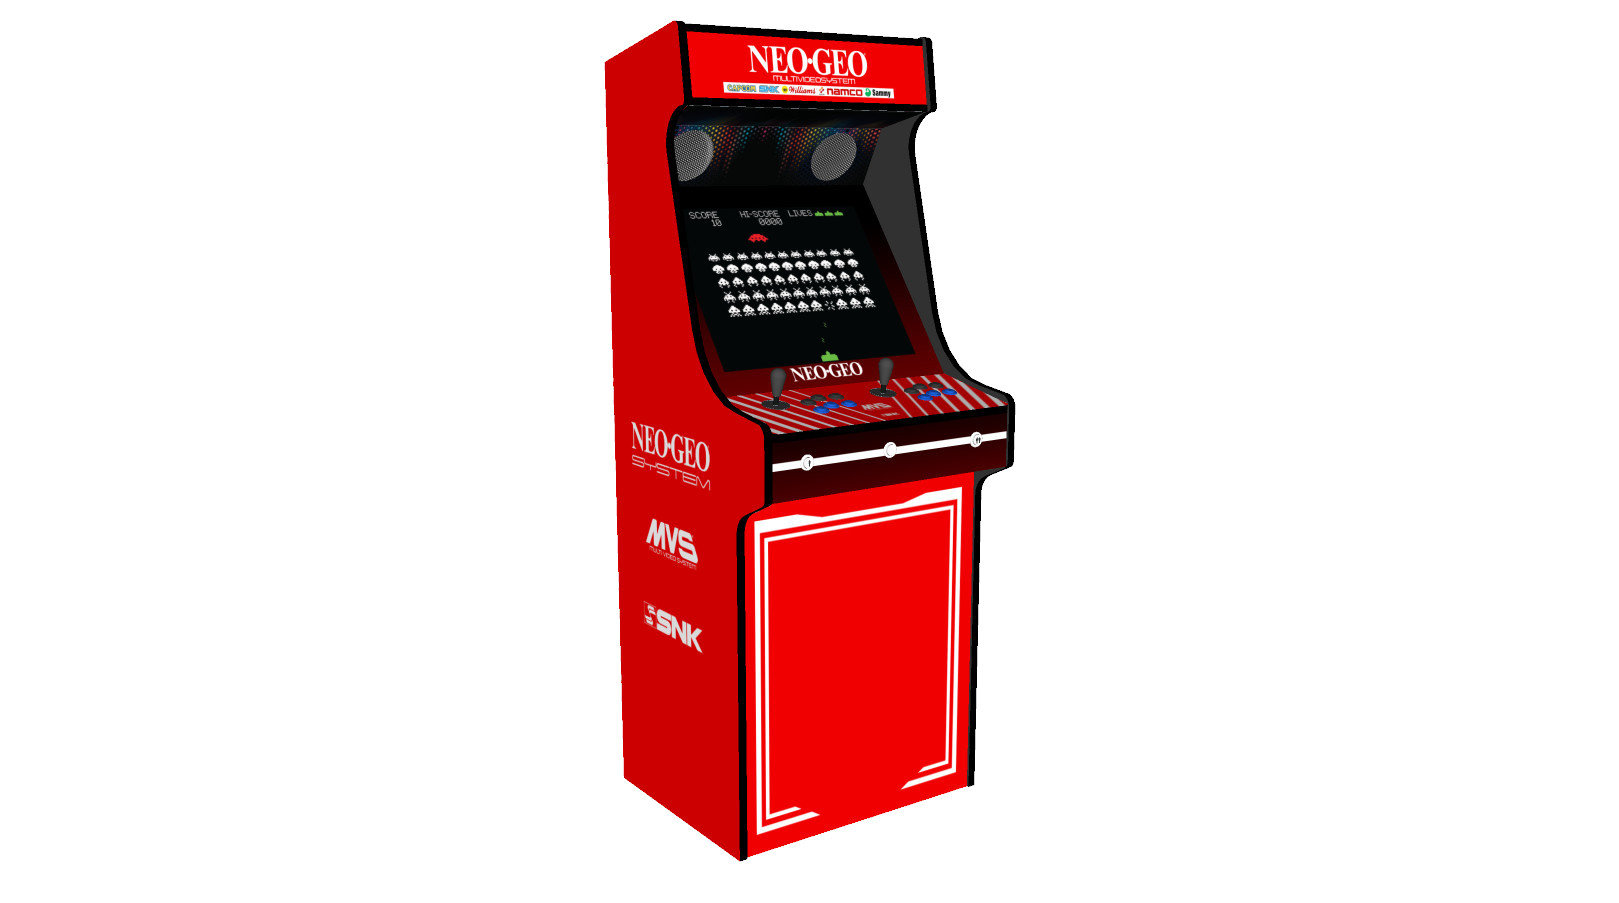 Classic-Upright-Arcade-Machine-NEO-GEO-Theme-100w-subwoofer-24-inch-screen-left